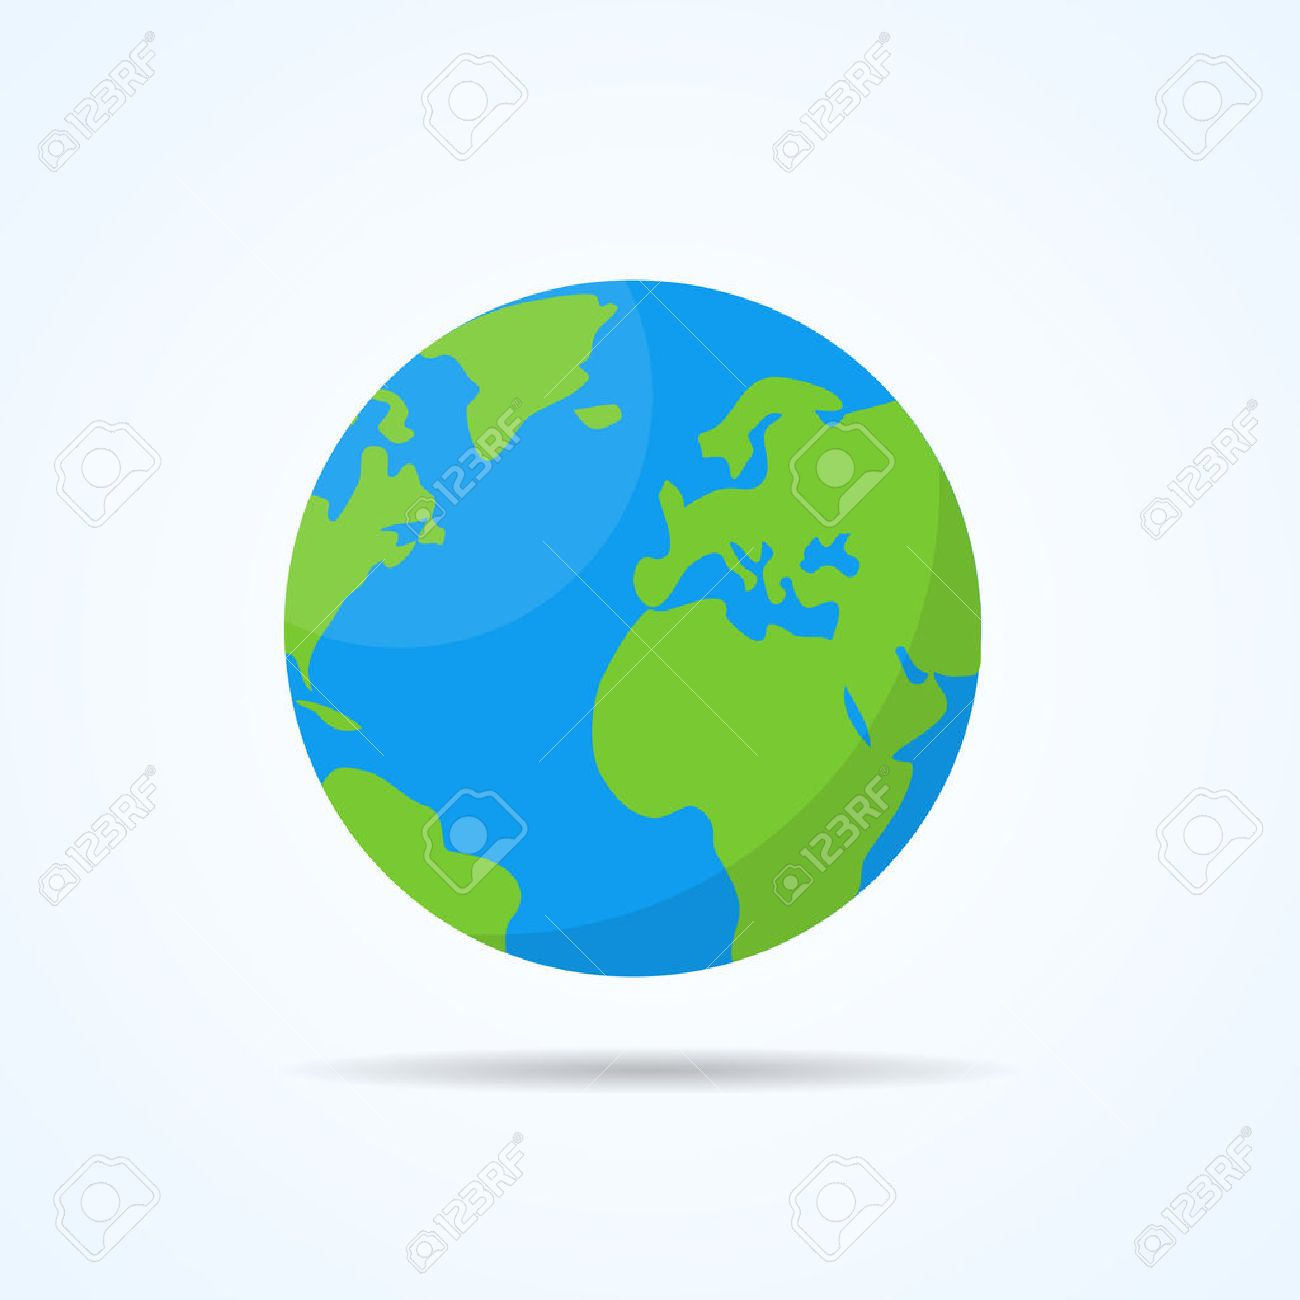 Earth planet with shadow. Flat style vector illustration. - 52617203